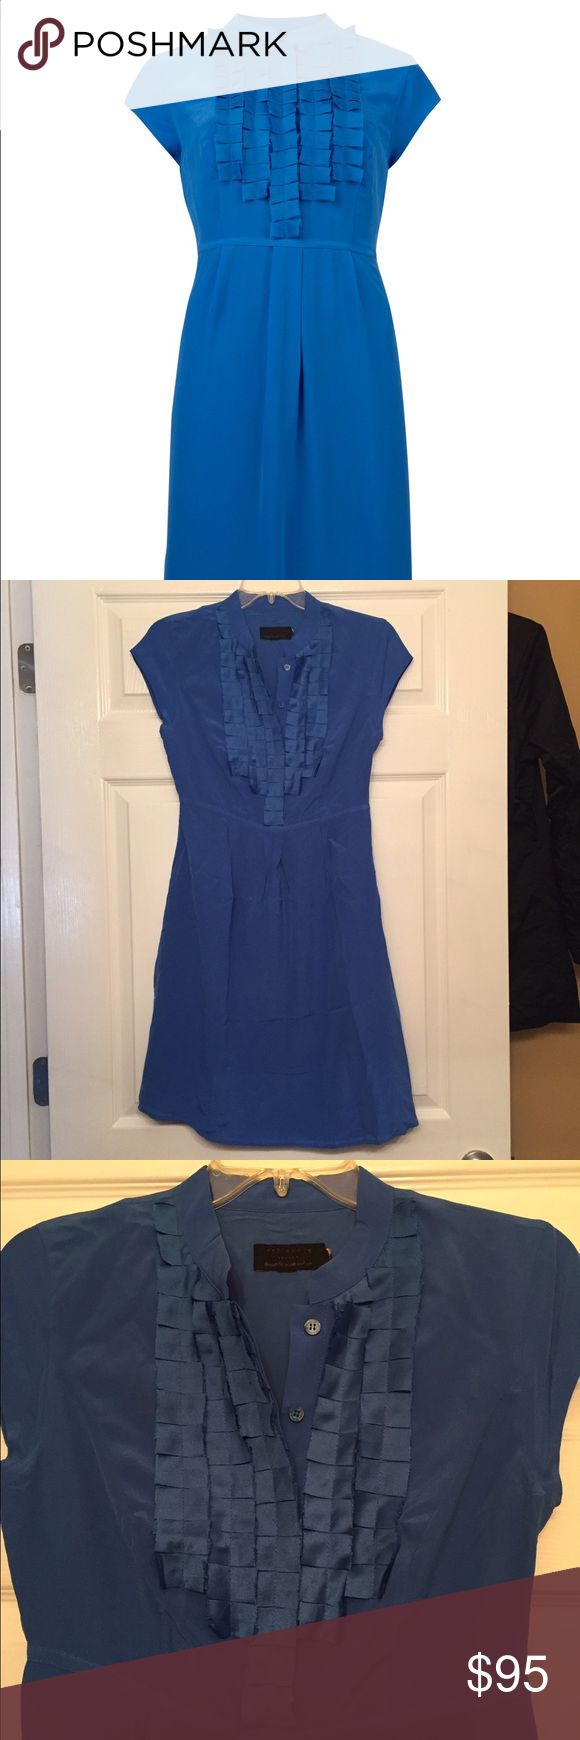 """New Ted Baker Blue Silk Empire Waist Dress New, never worn Ted Baker empire waist silk cobalt blue GUSADI dress. Tiered fabric and button closure in front (top), hidden side zipper, cap sleeves. Original size/care tags clipped to prevent store return. Ted Baker size 2 is a US size 6. Approximately 16"""" from arm to arm and 35"""" long. Ted Baker Dresses"""